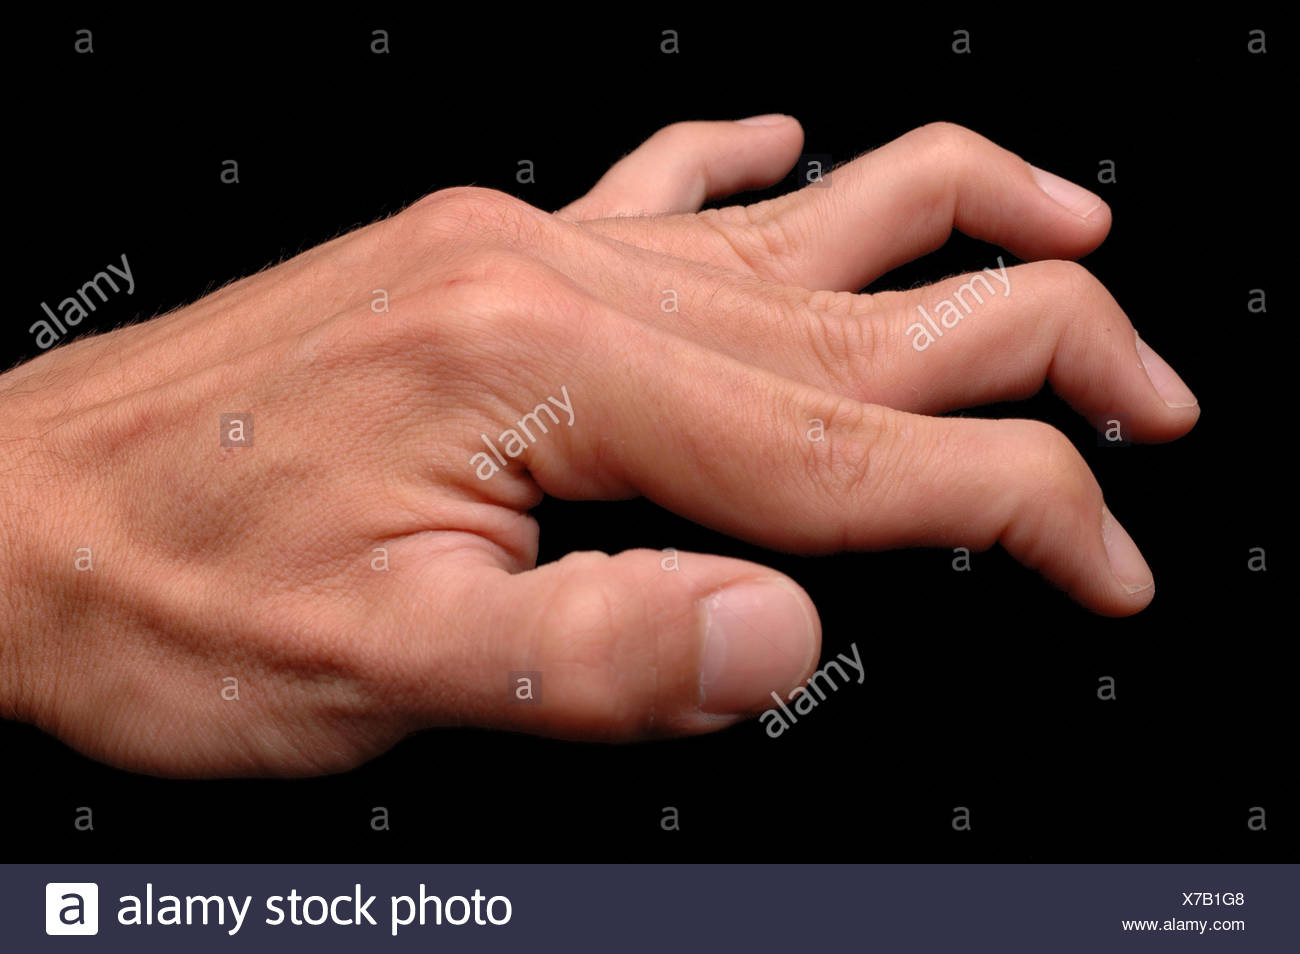 Ehlers Danlos Syndrome Ehlers Danlos Syndrome Stock Photo 279911192 Alamy